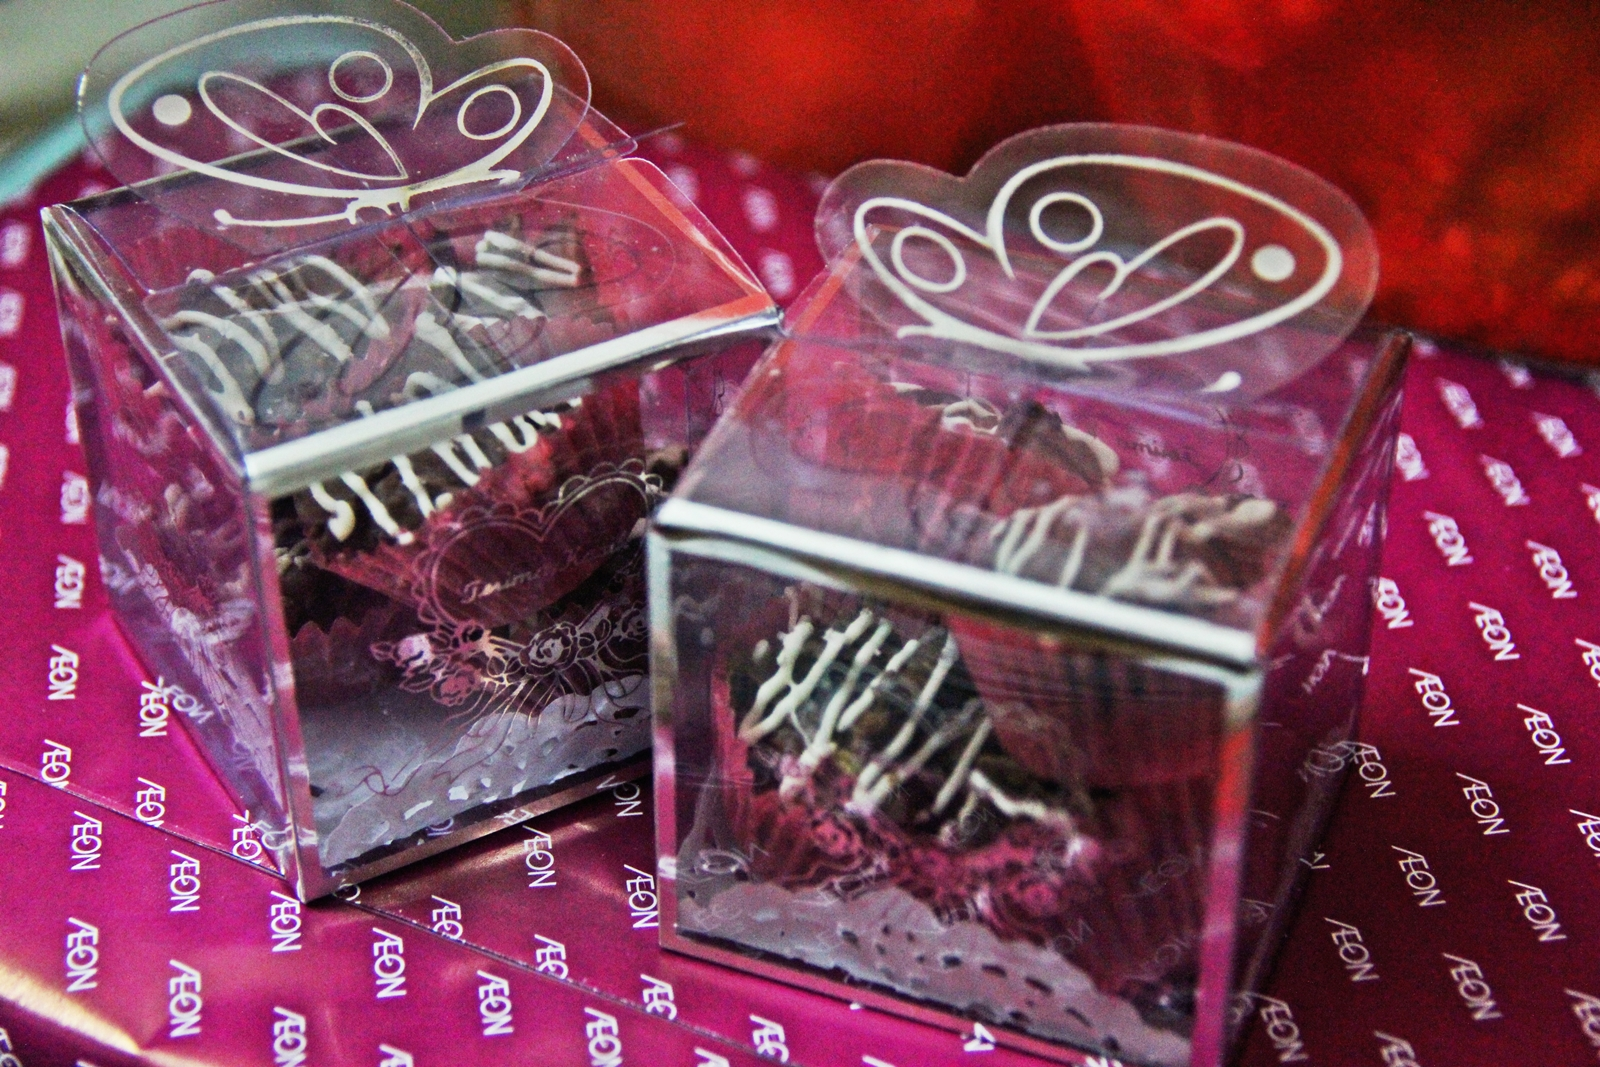 Chocolate For Wedding Door Gift : Suitable for wedding, birthday or give away door gift!